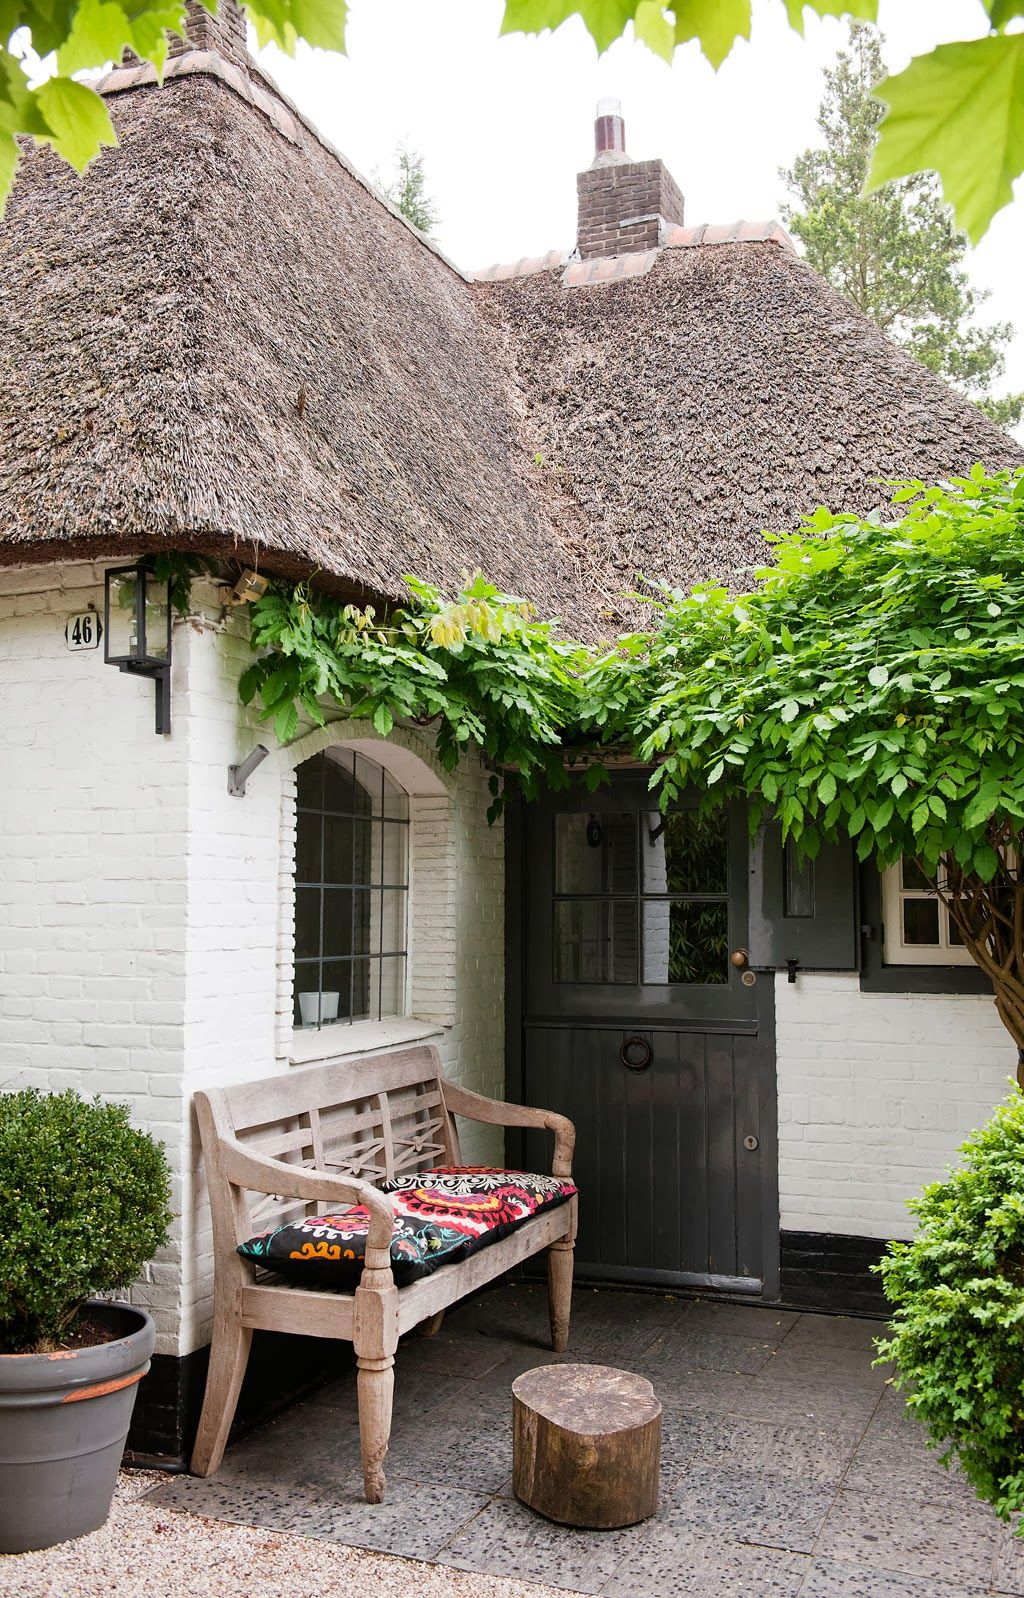 bench outside and thatched roof